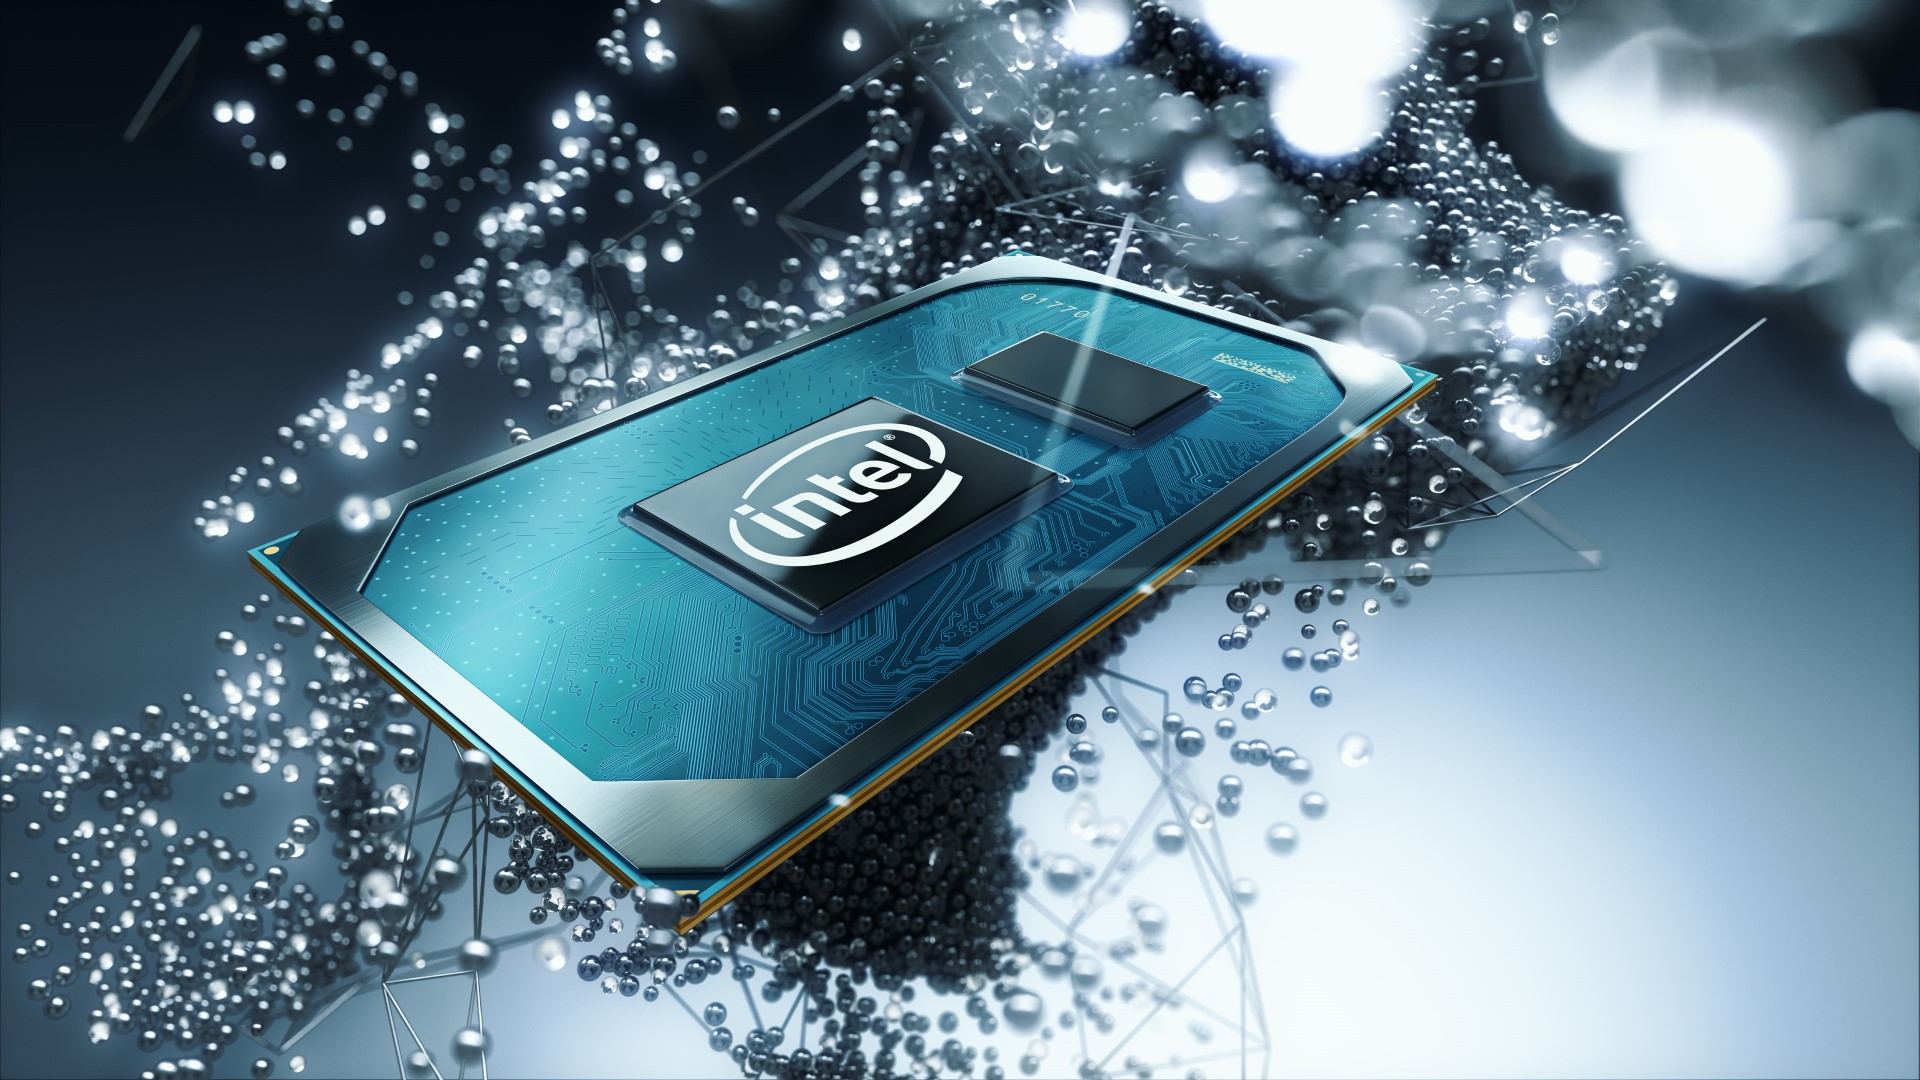 Intel Core i9-10980HK 8 Core, 10th Gen Mobility CPU Spotted With Up To 5.3 GHz Clocks – The Fastest Gaming Notebook Chip Ever Produced - Wccftech